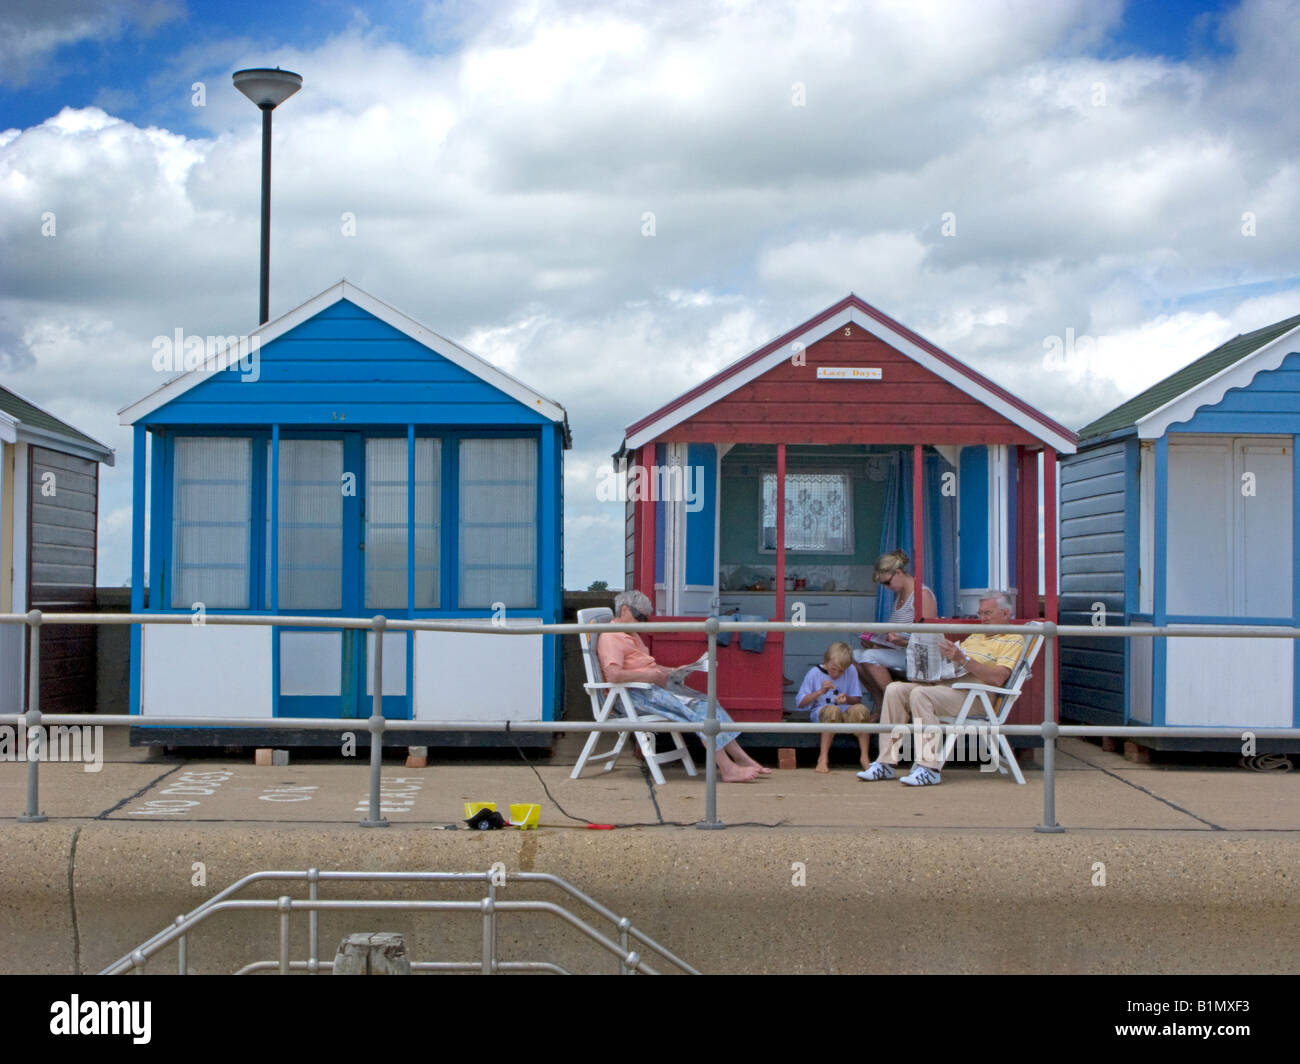 Lazy days beach hut at Southwold, Suffolk - Stock Image